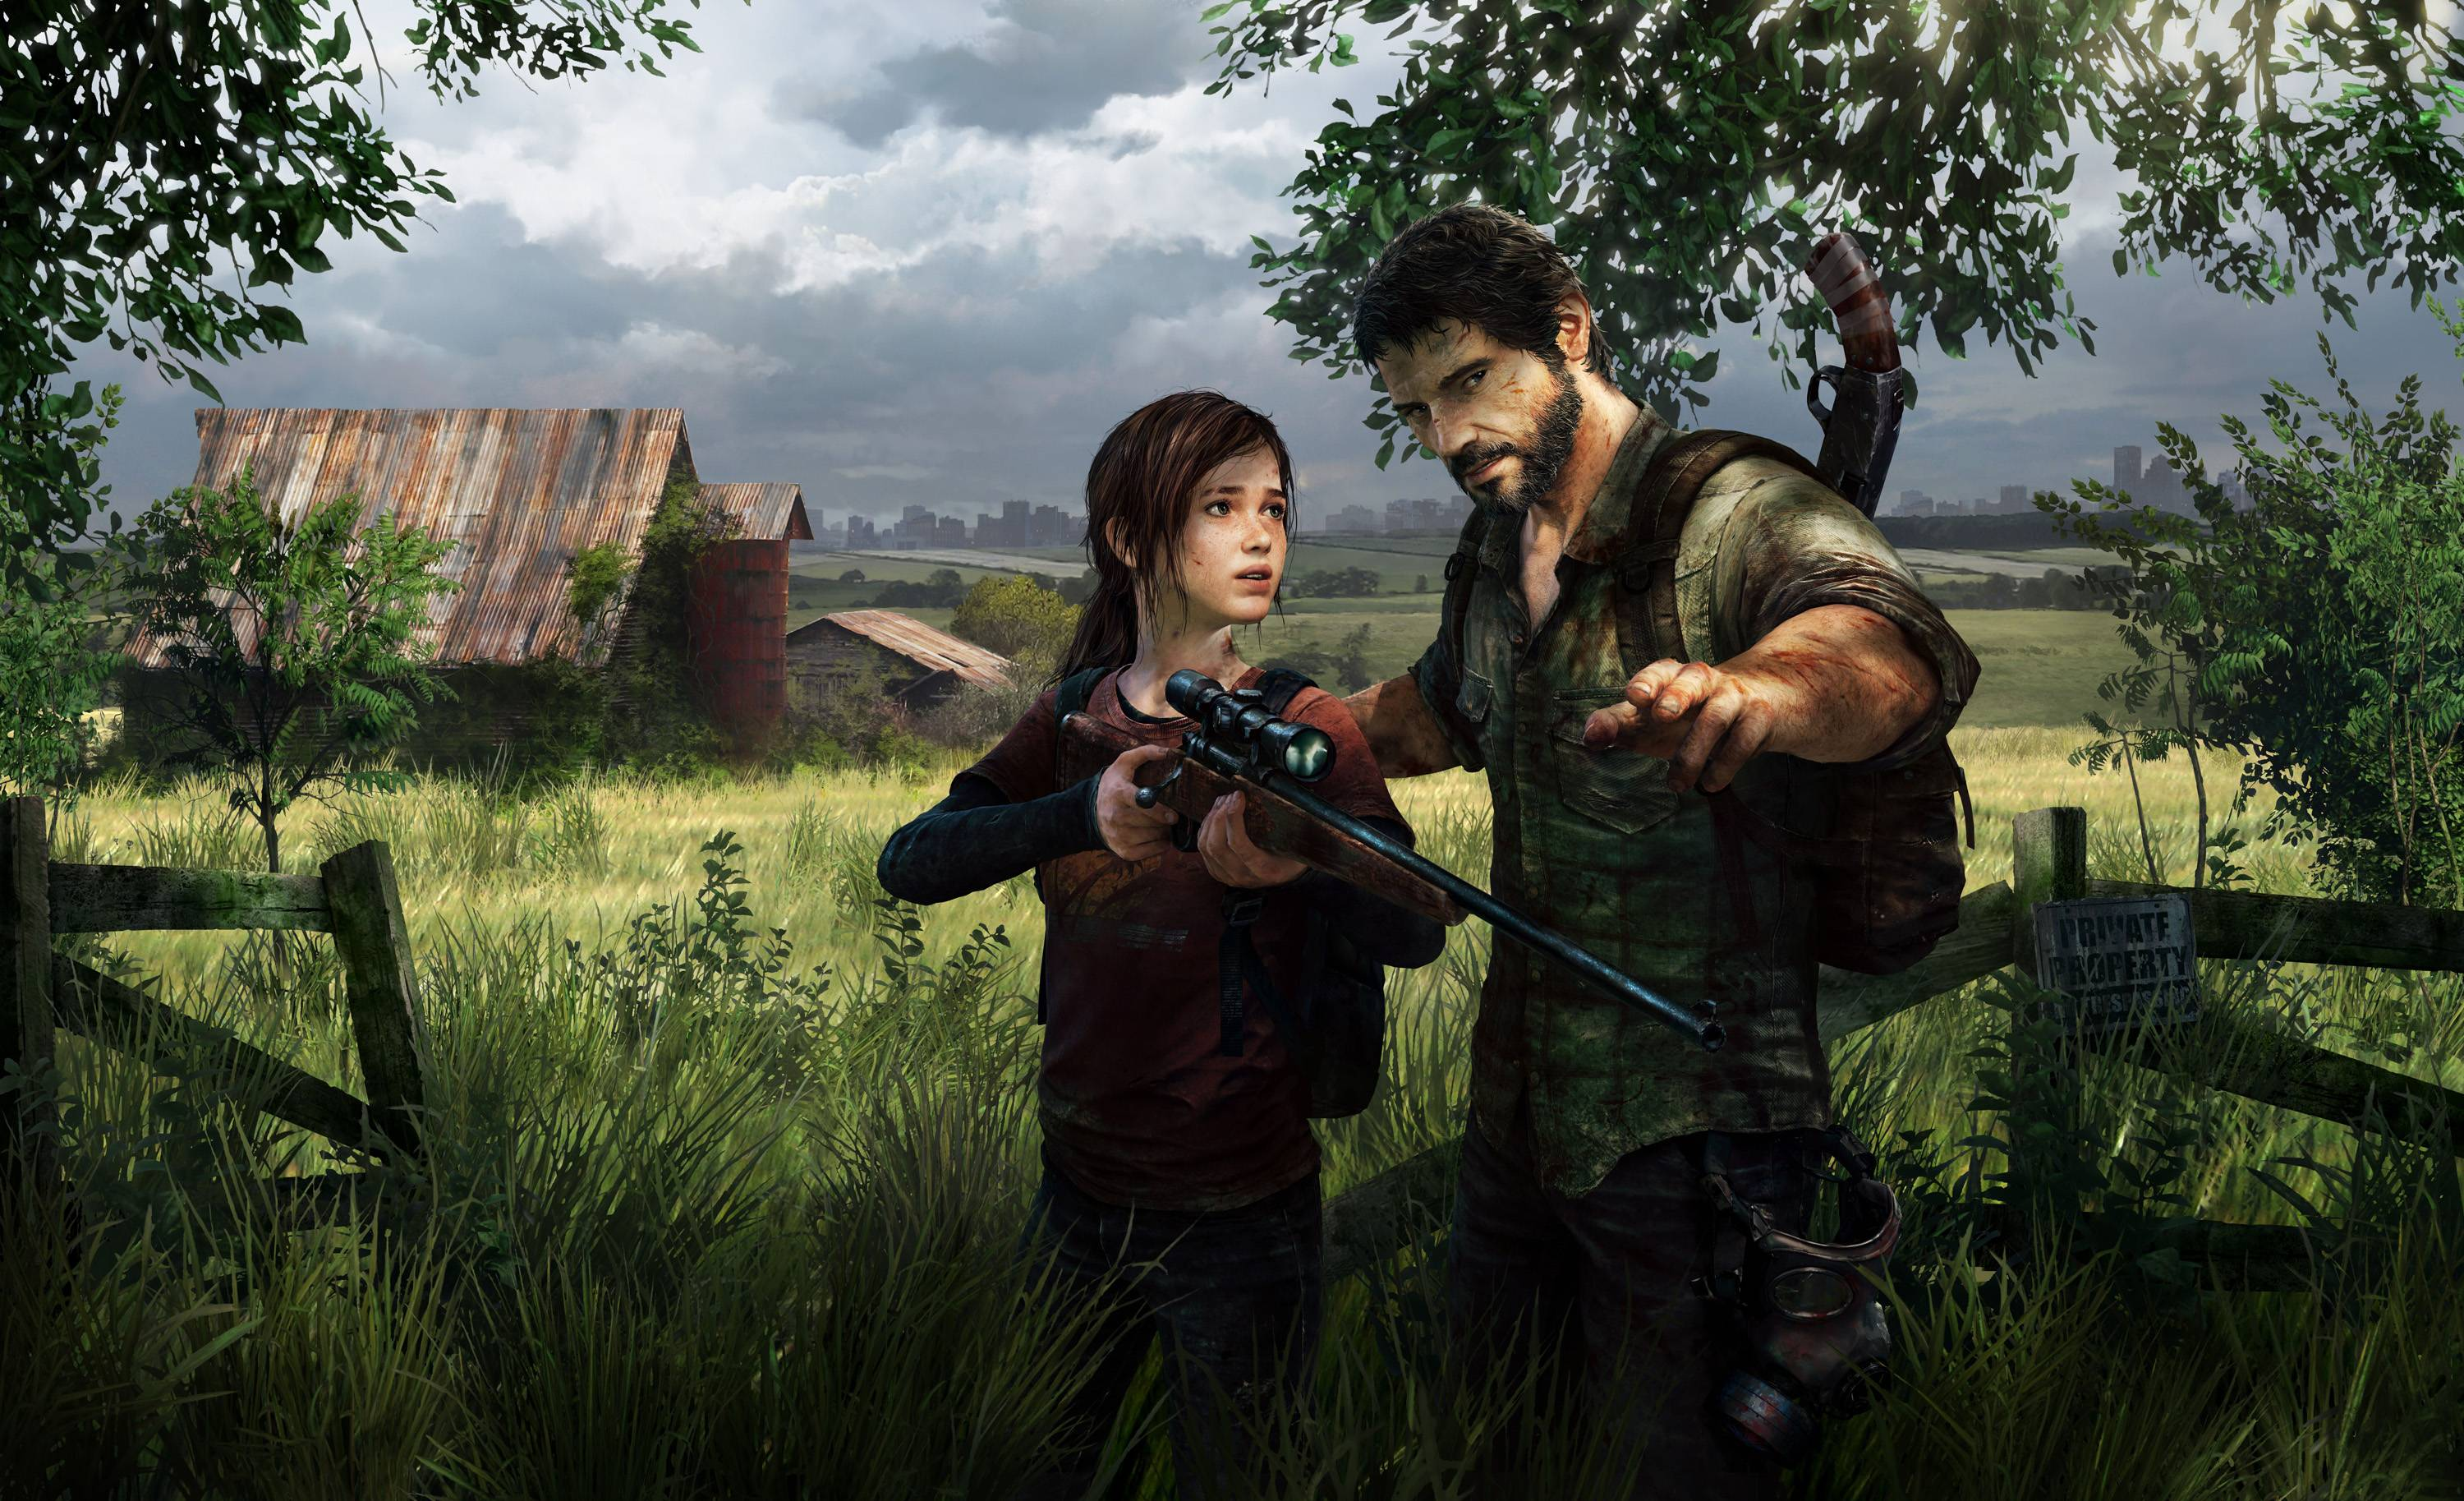 Joel and Ellie in The Last of Us